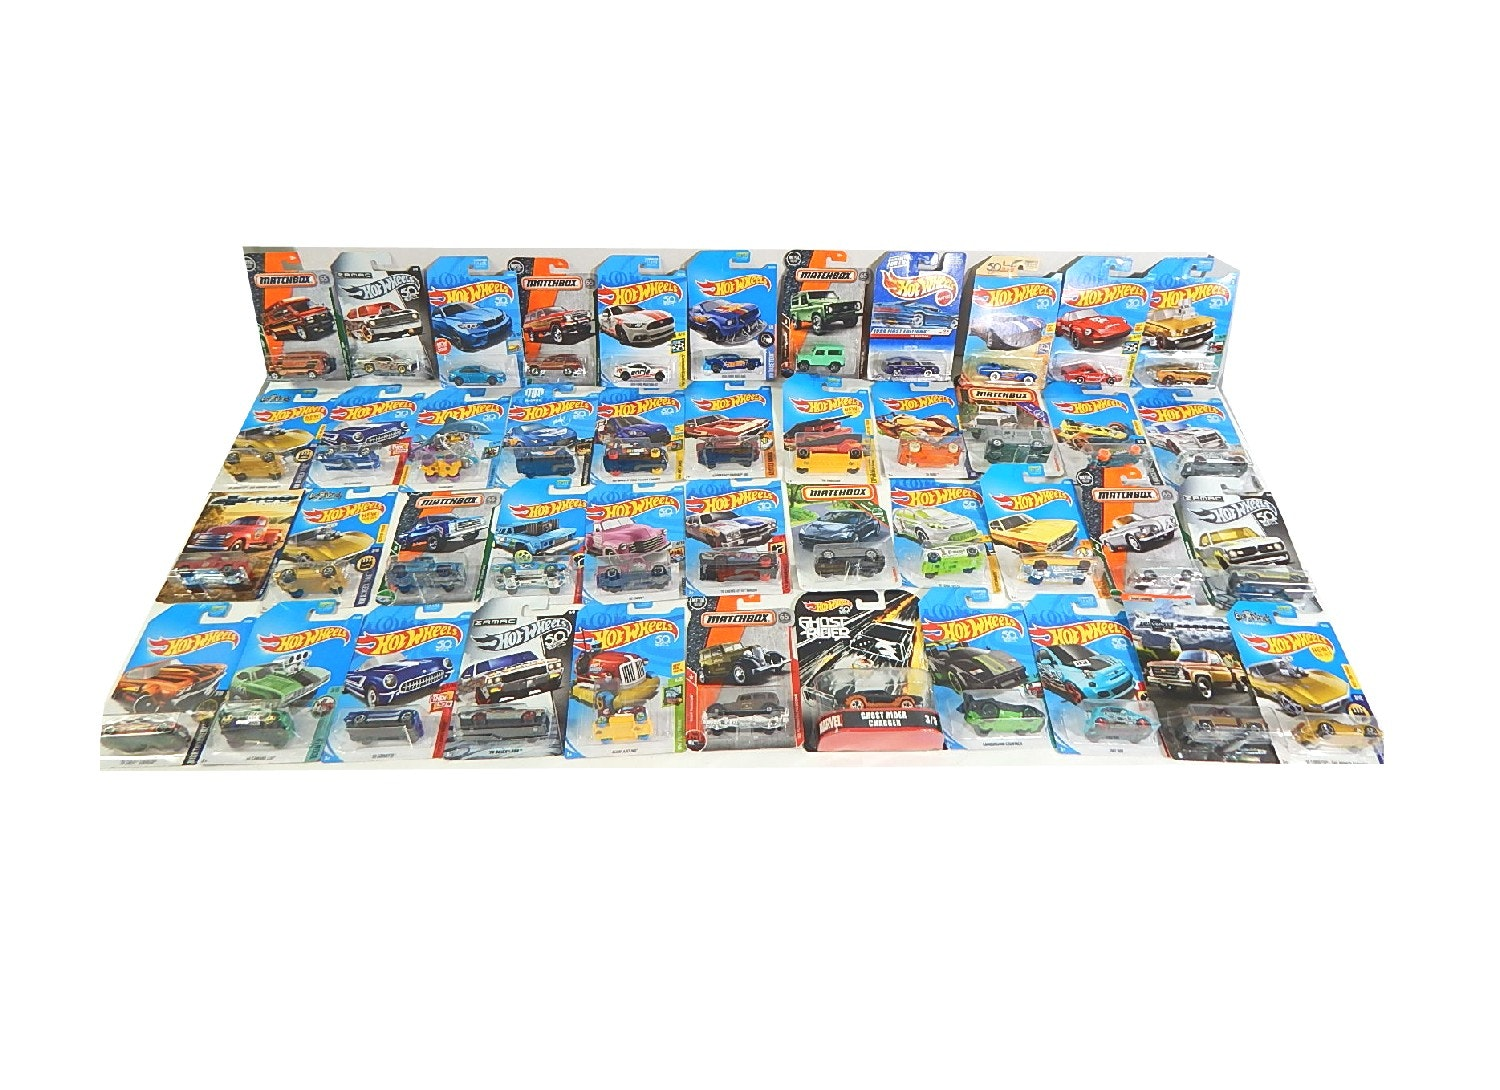 Collection of Hot Wheel and Matchbox Cars with Some Treasure Hunts